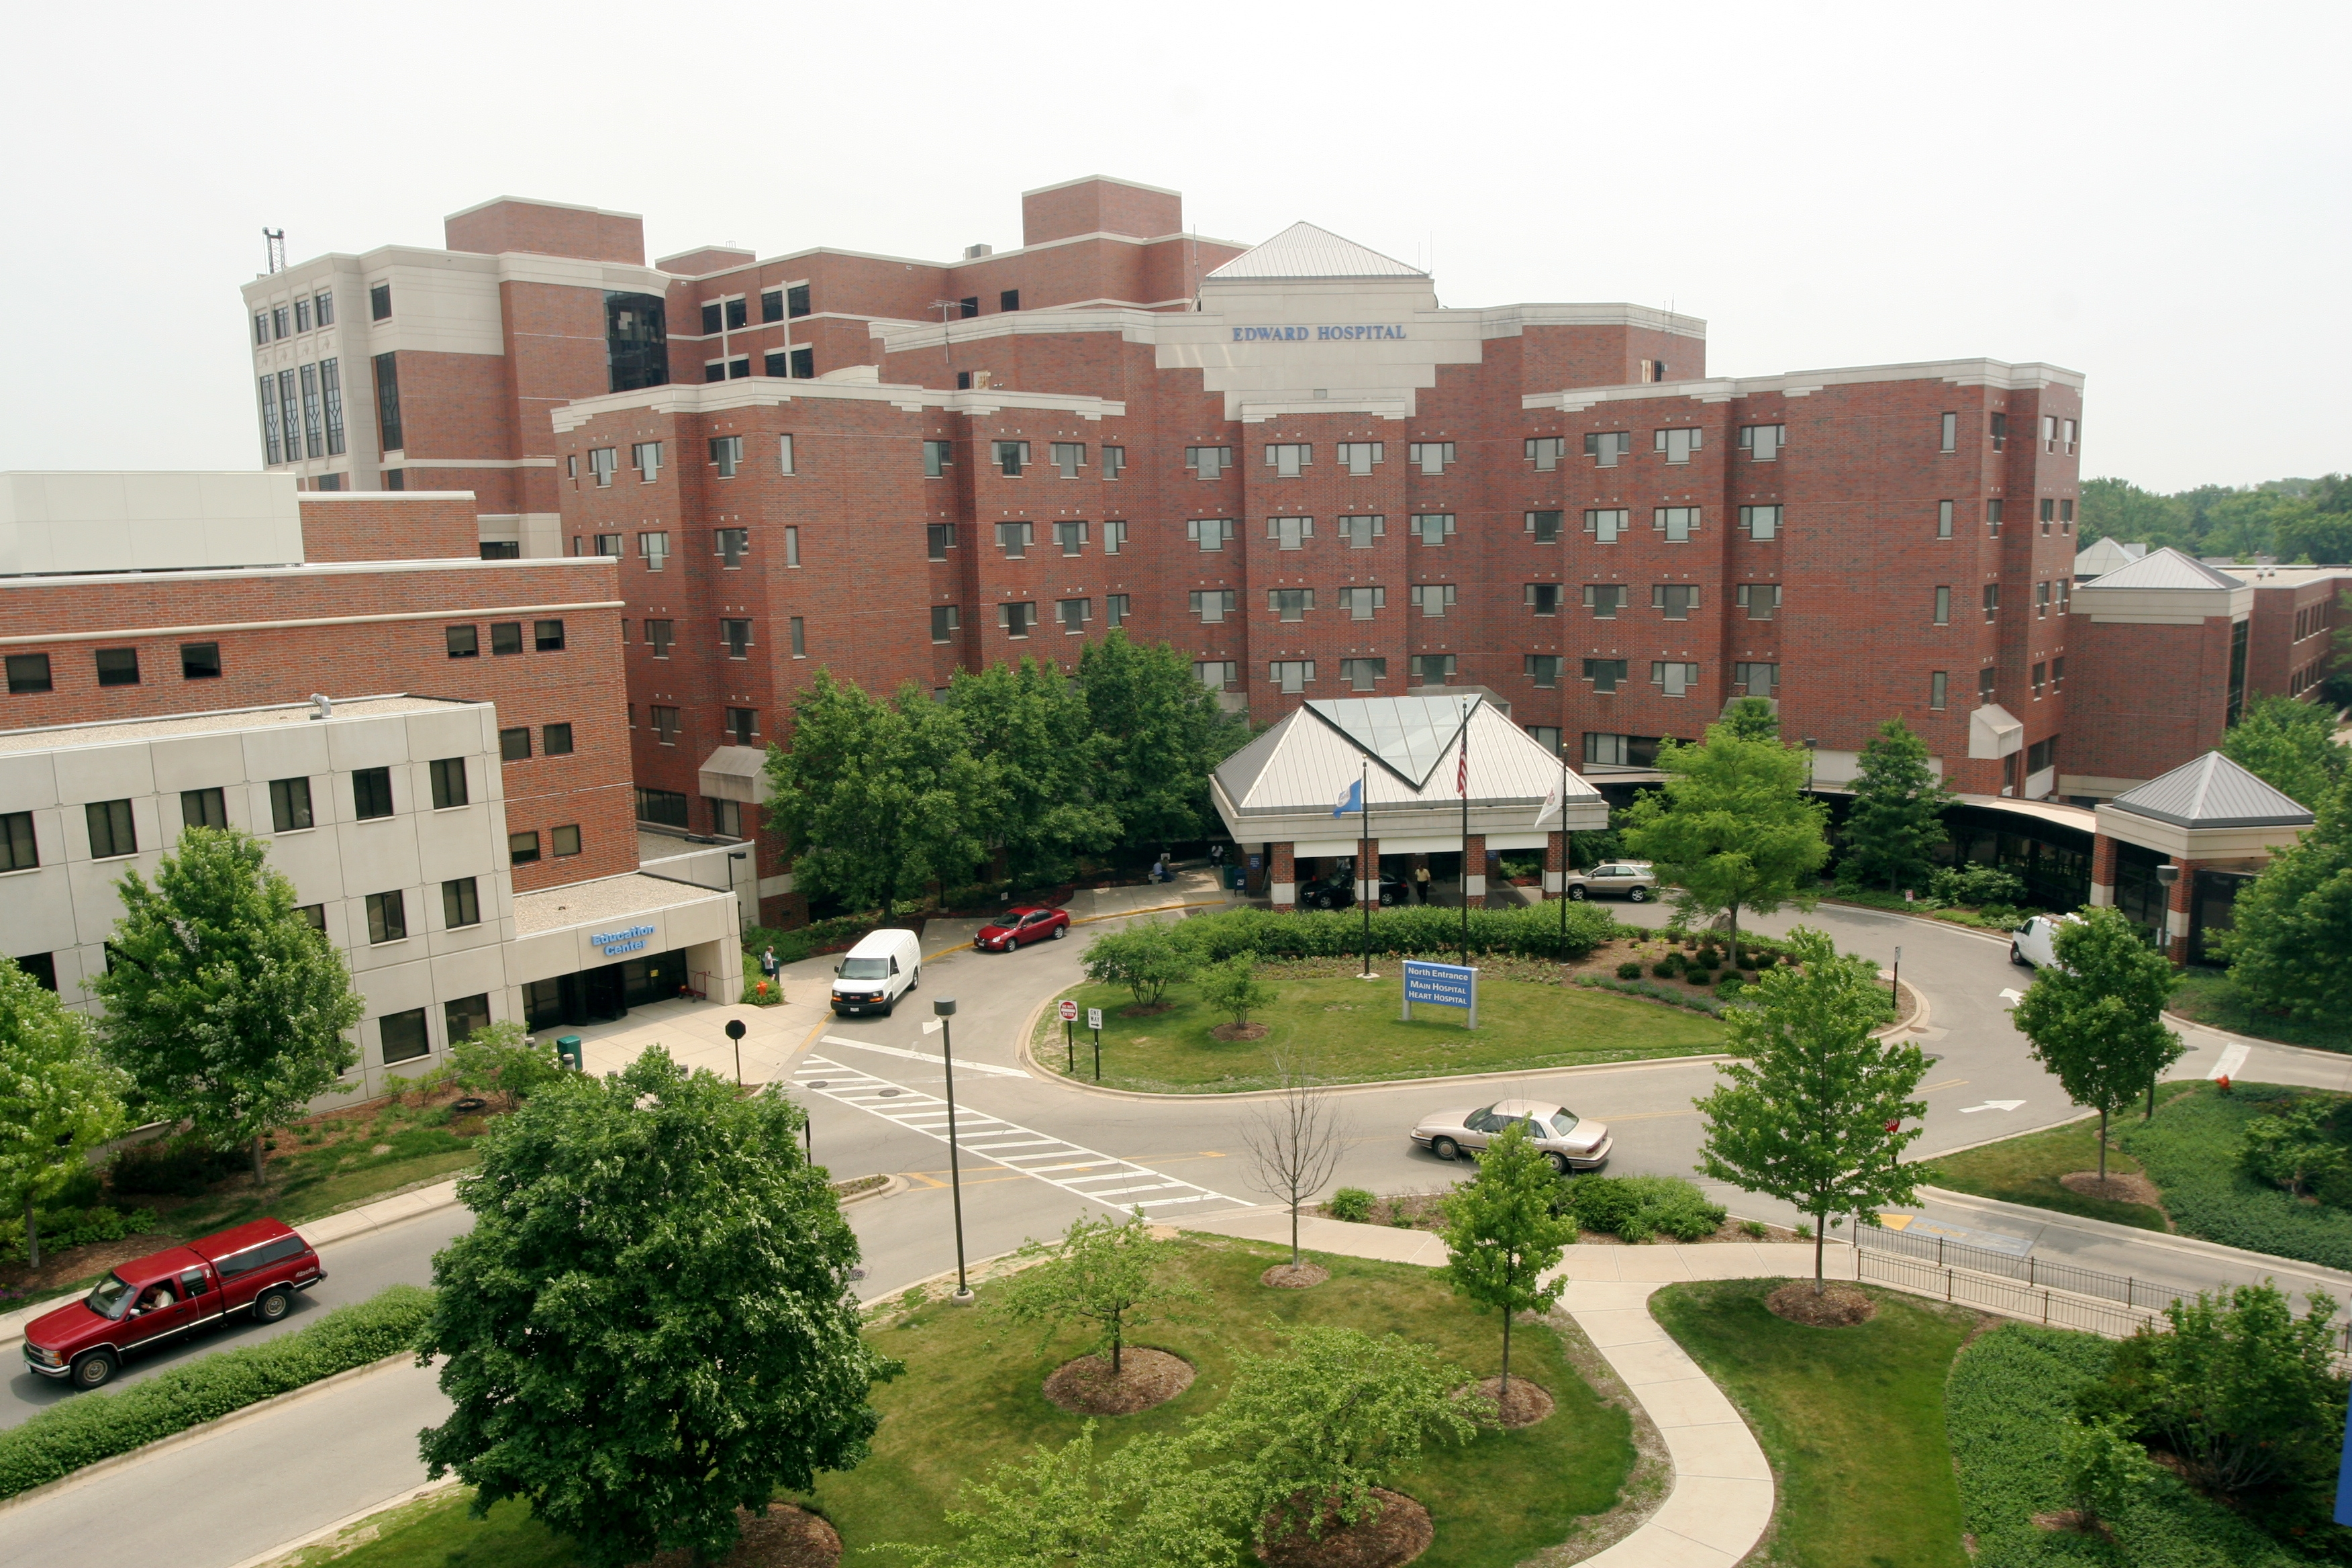 Edward Hospital and Health Services Image